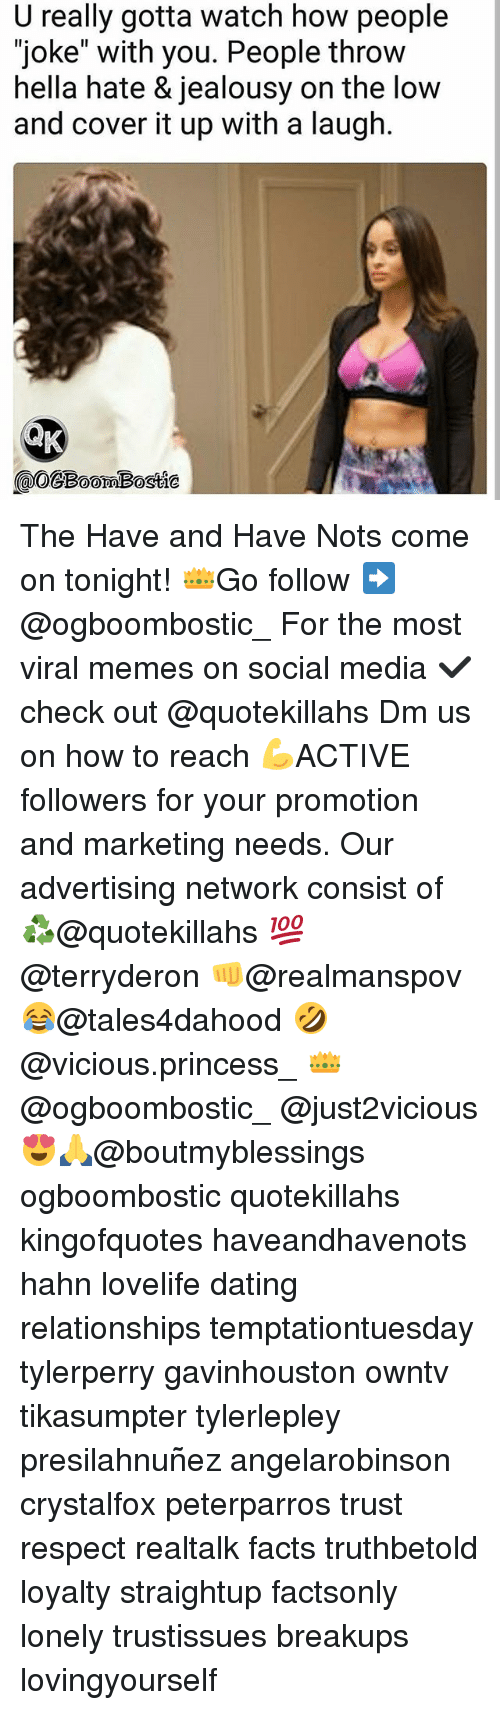 """Dating, Facts, and Memes: U really gotta watch how people  """"joke"""" with you. People throw  hella hate & jealousy on the low  and cover it up with a laugh  @OCBoomBostte  omBostie The Have and Have Nots come on tonight! 👑Go follow ➡@ogboombostic_ For the most viral memes on social media ✔check out @quotekillahs Dm us on how to reach 💪ACTIVE followers for your promotion and marketing needs. Our advertising network consist of ♻@quotekillahs 💯@terryderon 👊@realmanspov 😂@tales4dahood 🤣@vicious.princess_ 👑@ogboombostic_ @just2vicious😍🙏@boutmyblessings ogboombostic quotekillahs kingofquotes haveandhavenots hahn lovelife dating relationships temptationtuesday tylerperry gavinhouston owntv tikasumpter tylerlepley presilahnuñez angelarobinson crystalfox peterparros trust respect realtalk facts truthbetold loyalty straightup factsonly lonely trustissues breakups lovingyourself"""